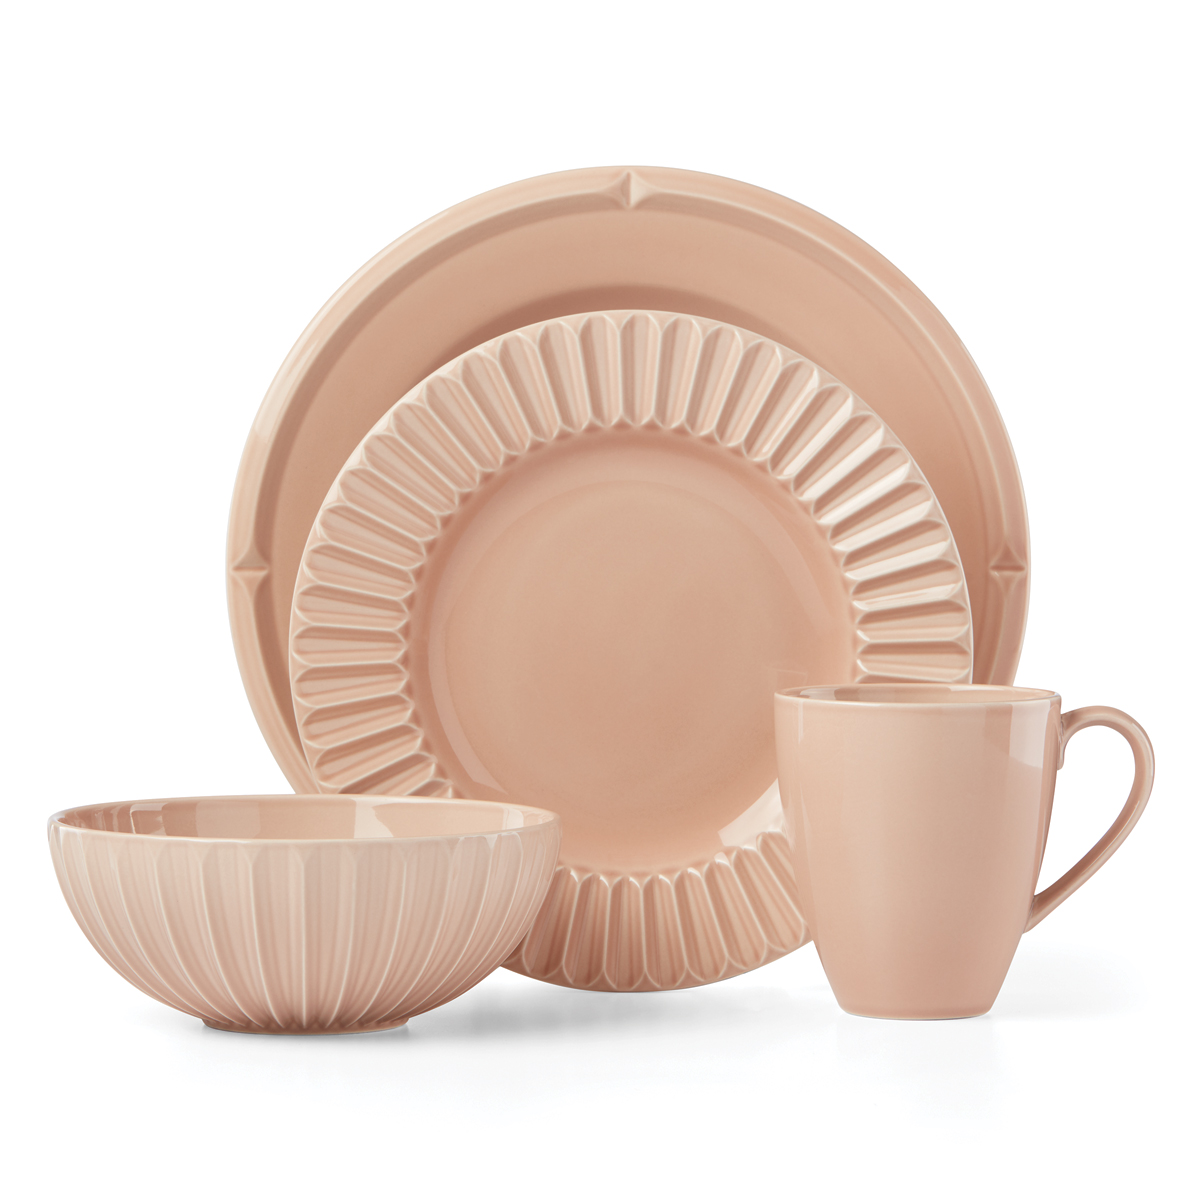 Kate Spade China by Lenox, Tribeca Rose 4 Piece Plate Set